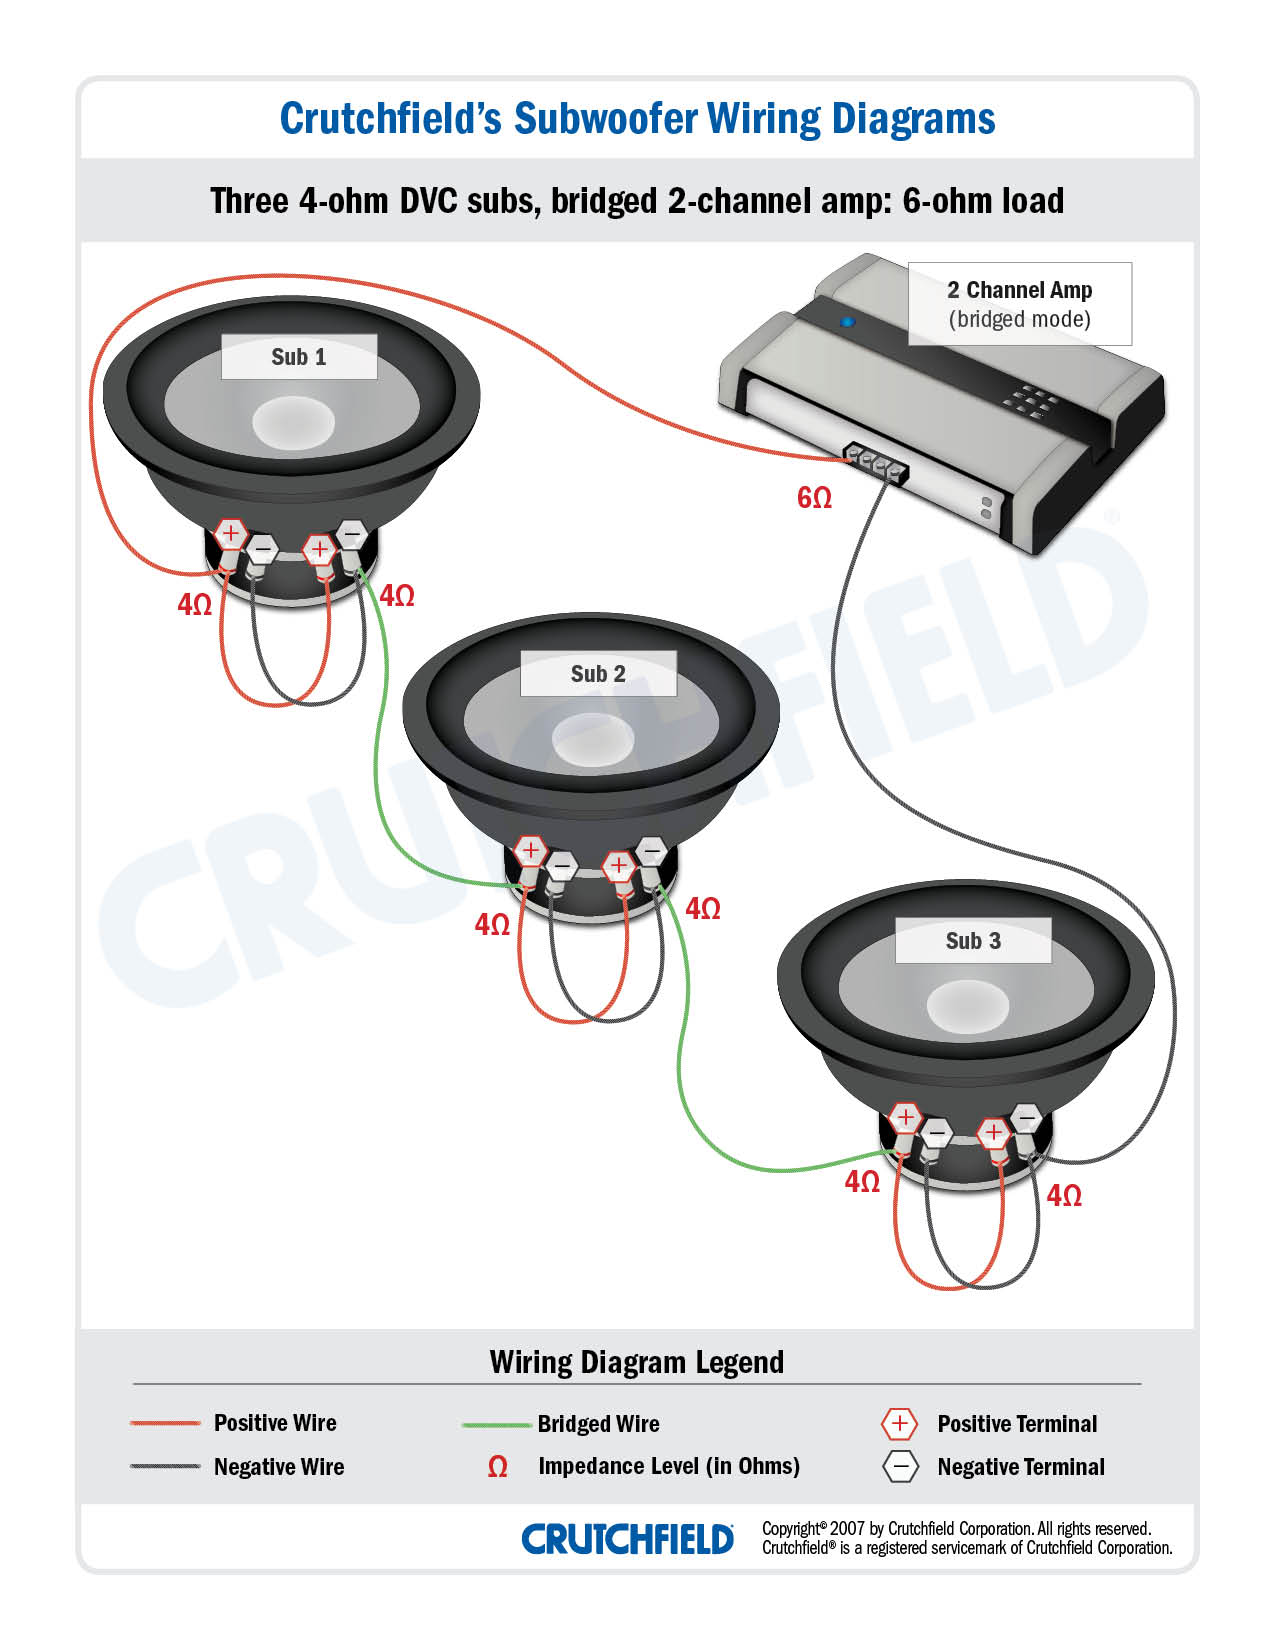 3 DVC 4 ohm 2 ch subwoofer wiring diagrams kicker solo baric l5 wiring diagram at eliteediting.co